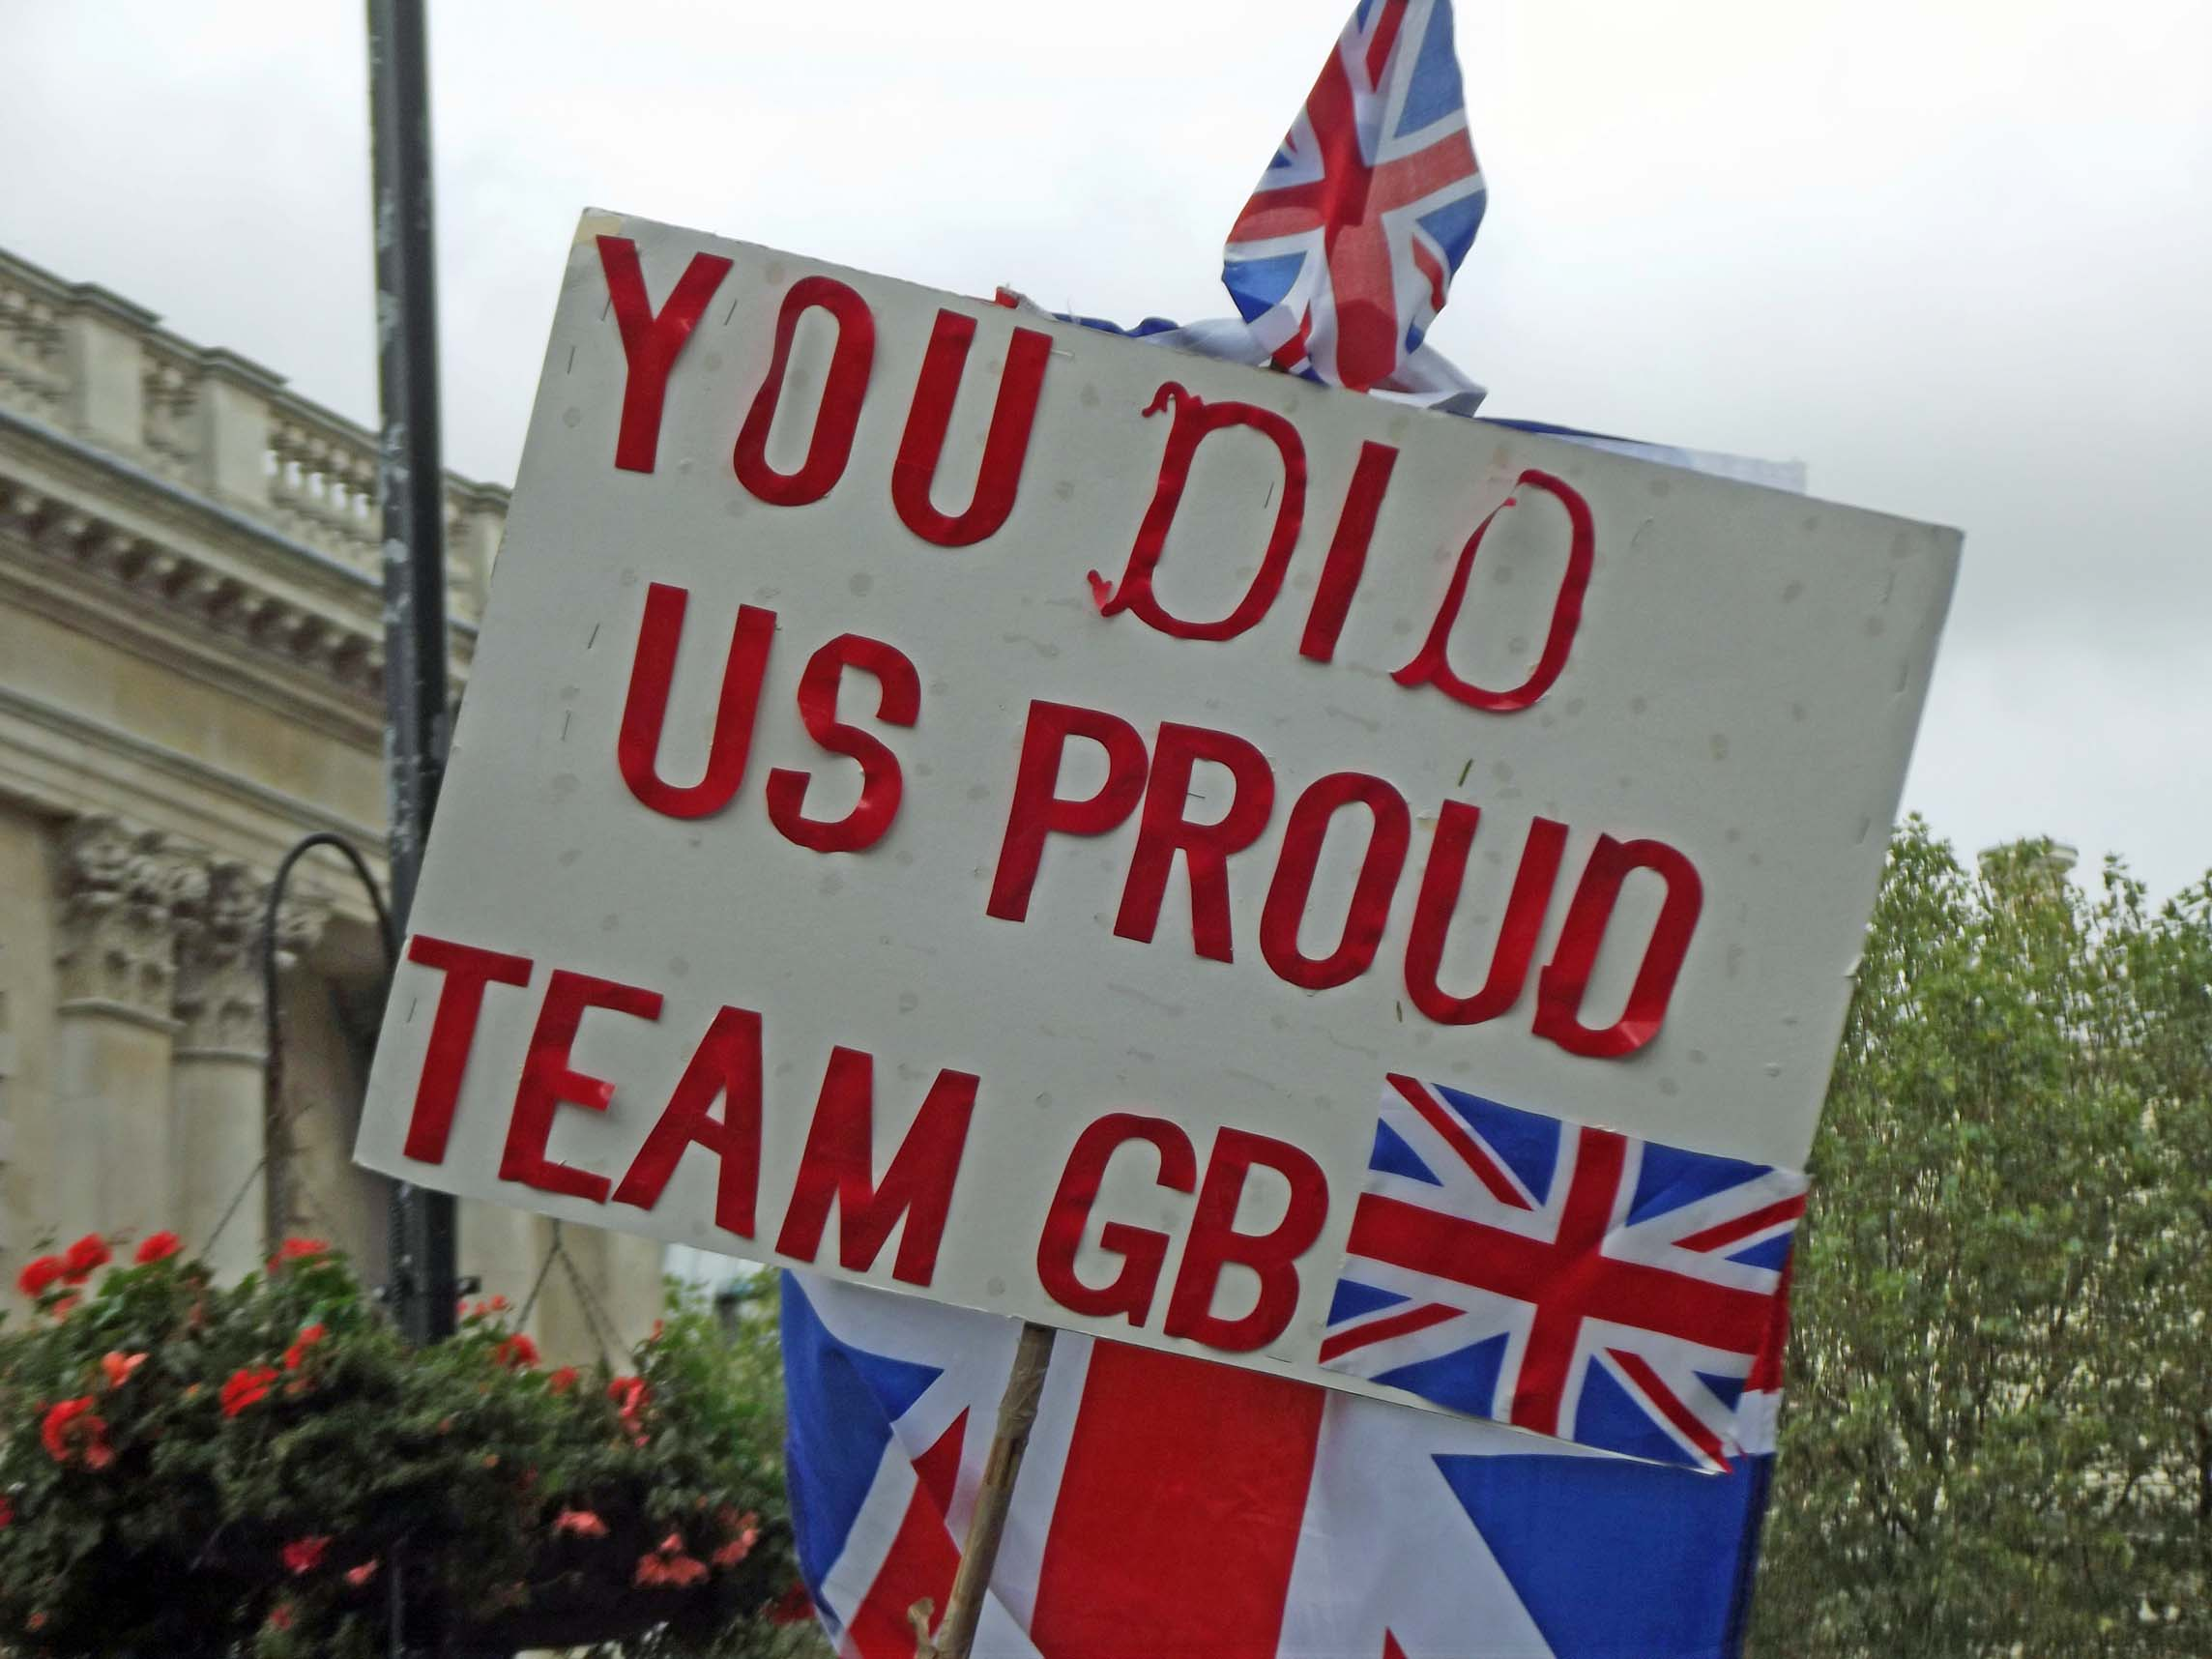 Sign 'You did us proud team GB'